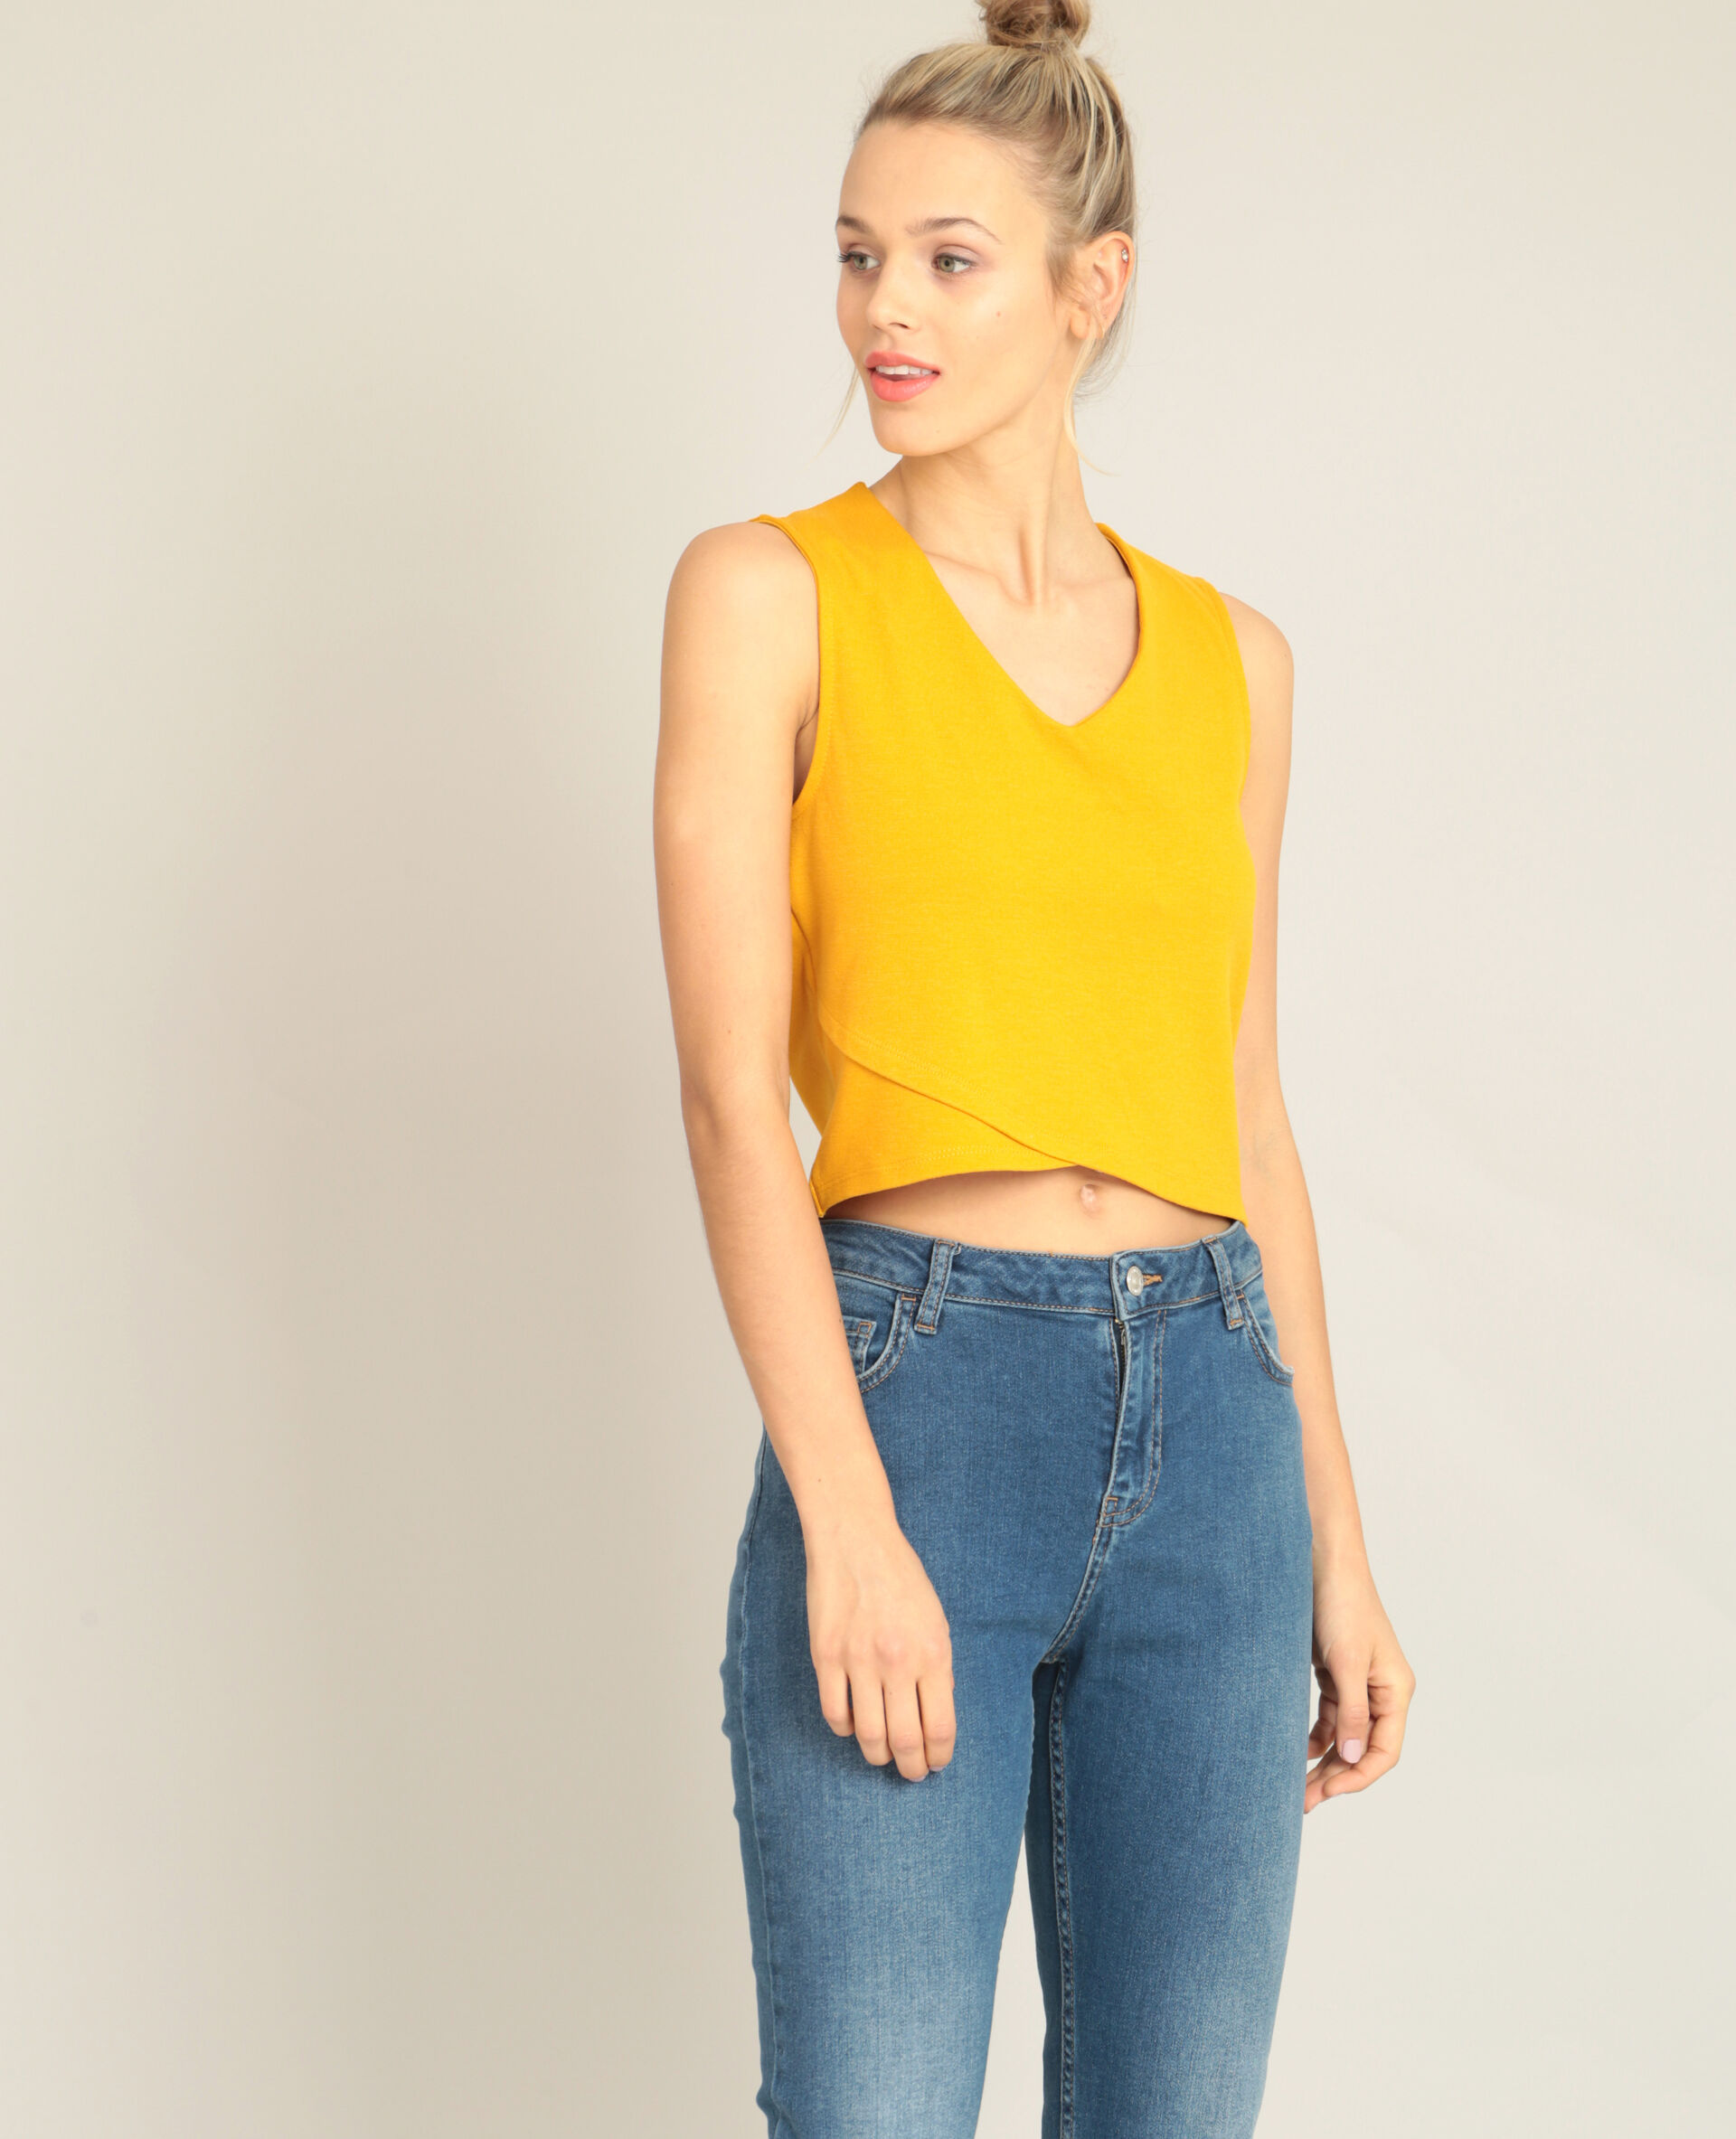 ✅Cropped top col V Femme - Couleur jaune - Taille M - PIMKIE - MODE FEMME